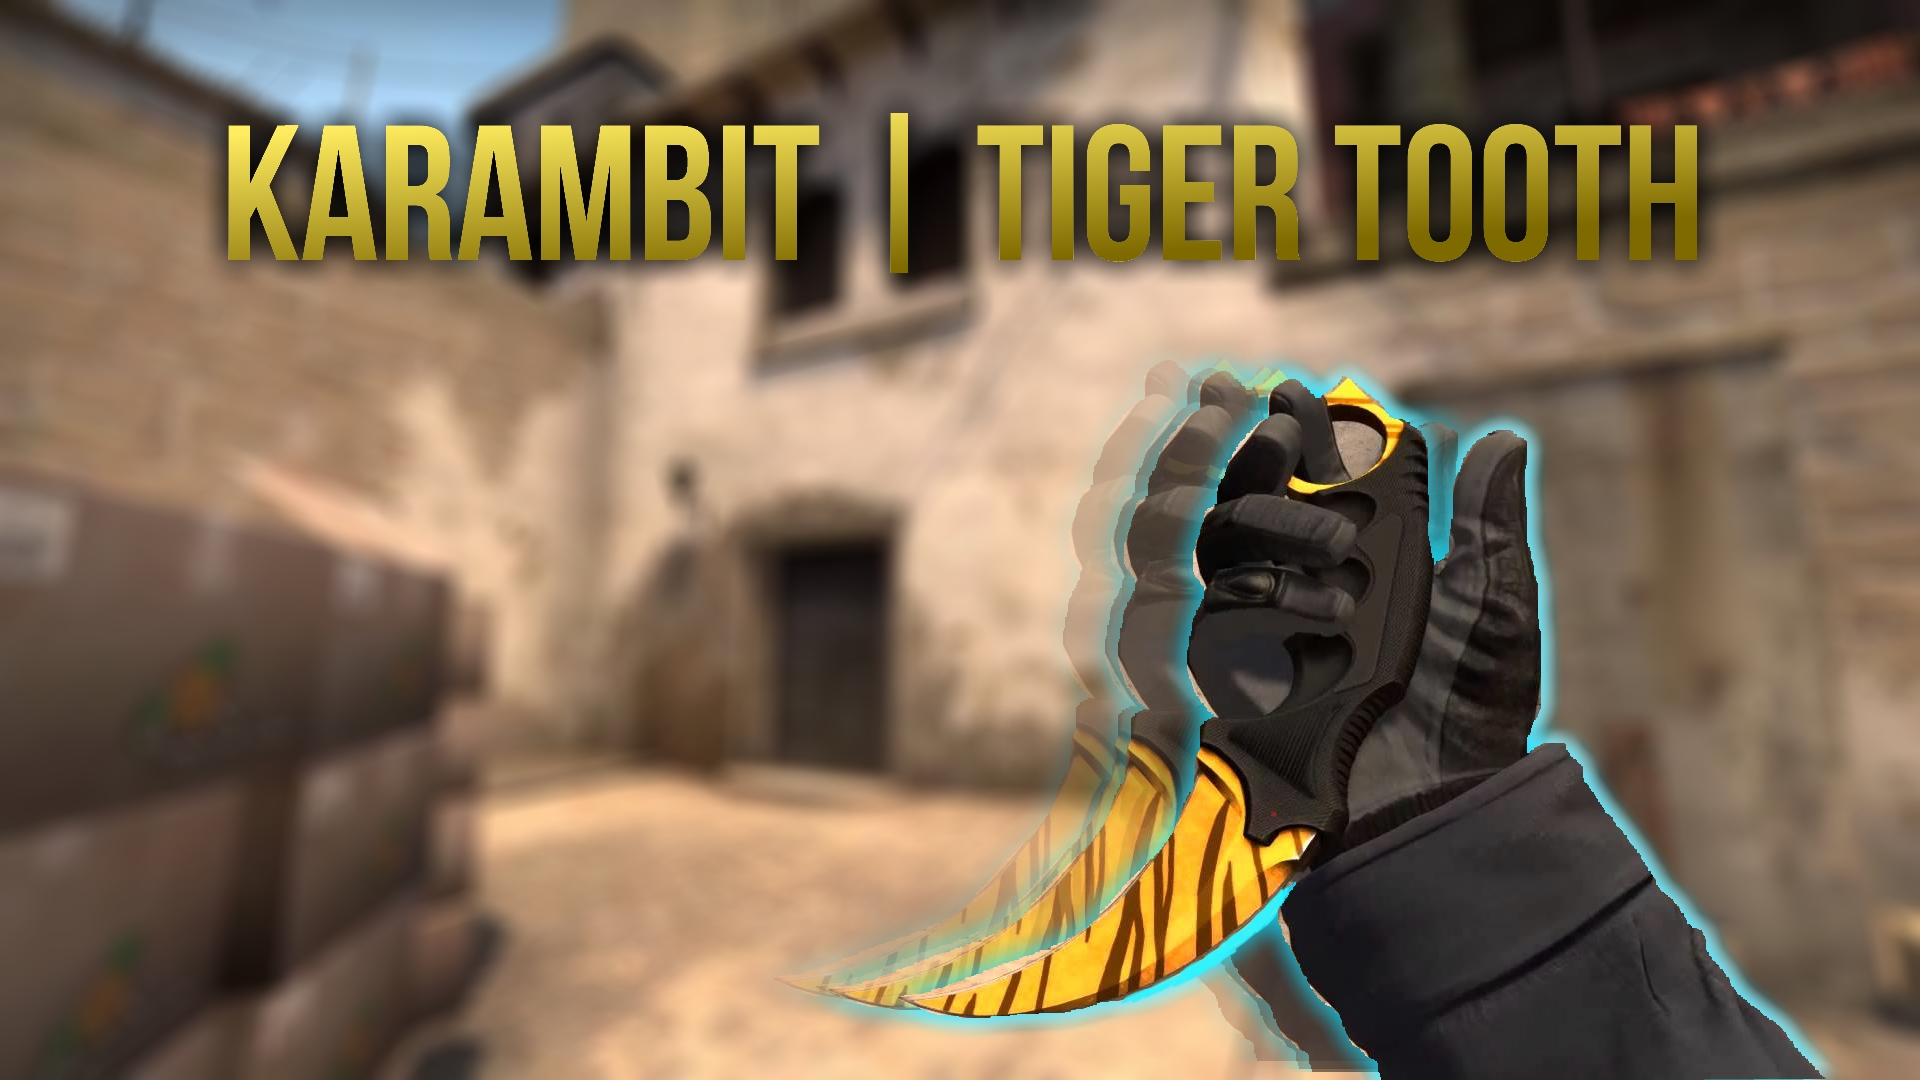 Karambit | Tiger tooth